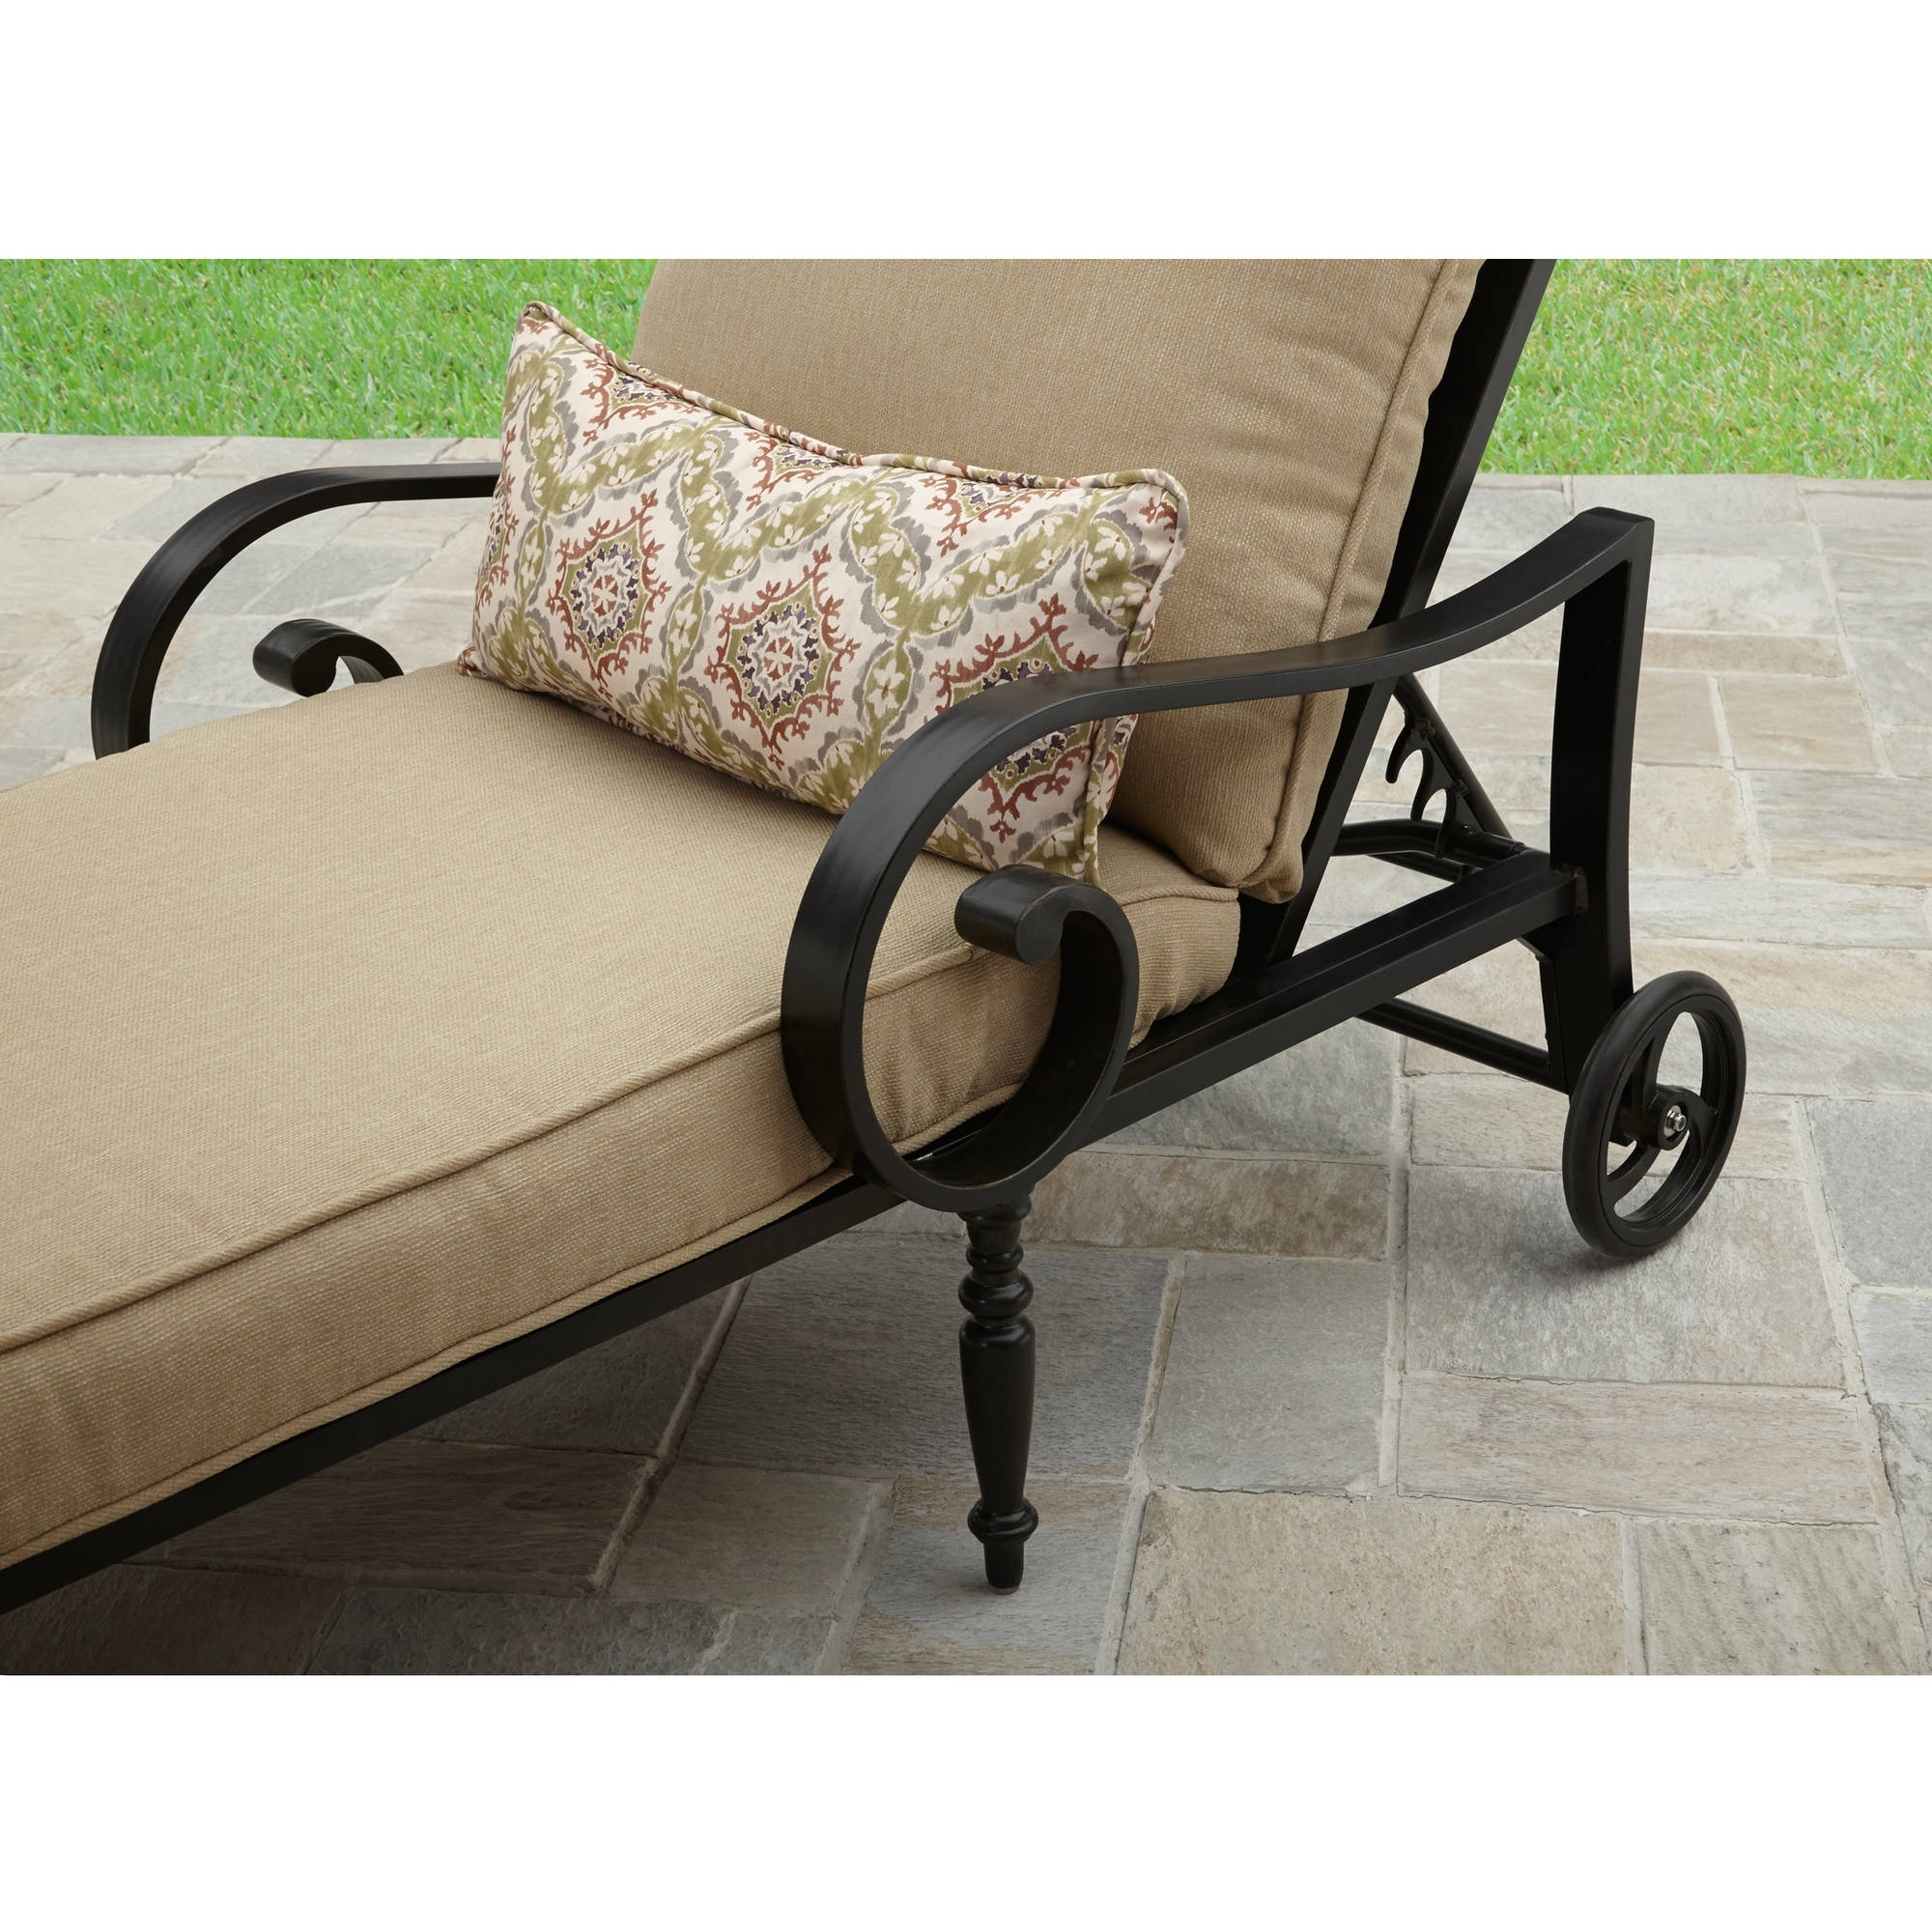 Current Cast Aluminum Chaise Lounges With Wheels In Better Homes And Gardens Englewood Heights Ii Aluminum Outdoor (View 10 of 15)